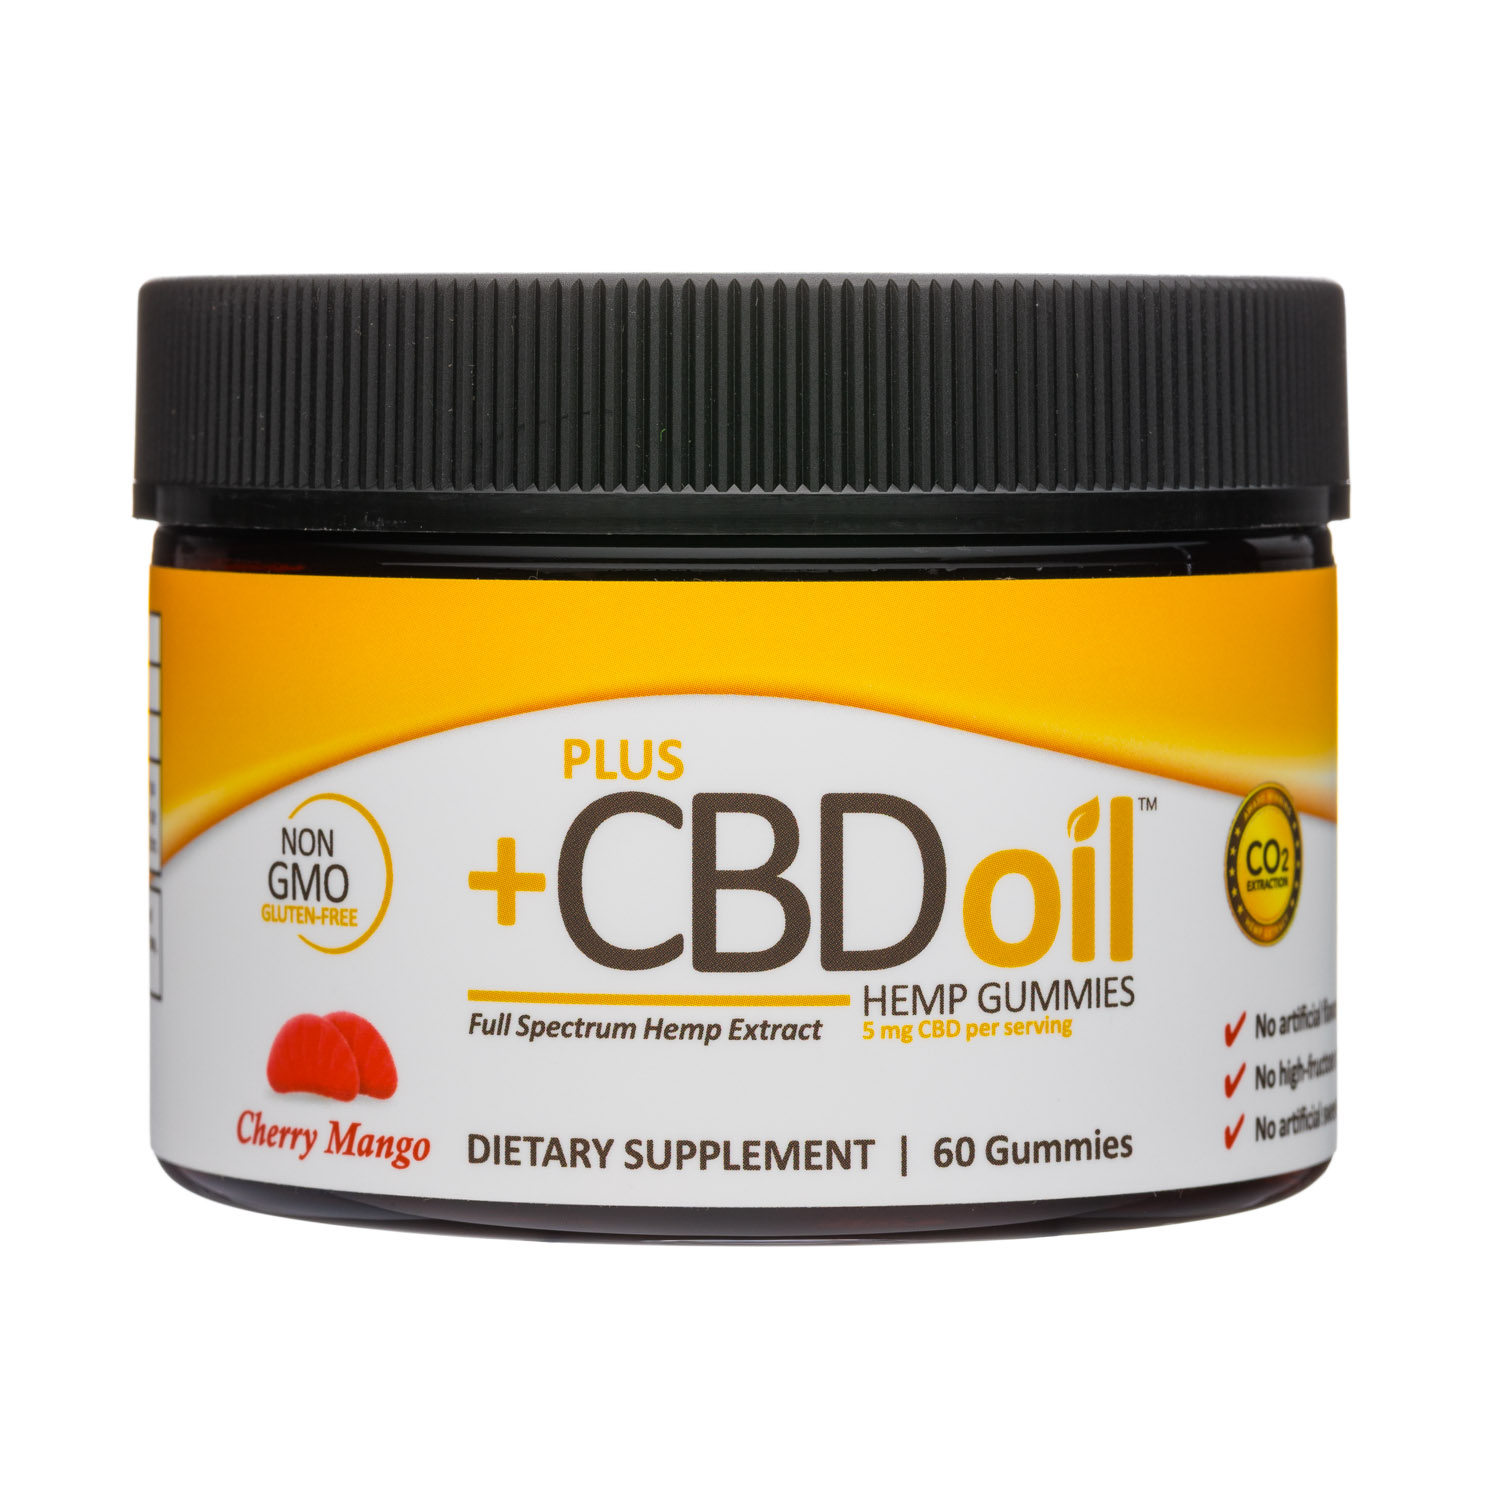 Plus CBD Oil Capsules GOLD Formula 15mg ...cbdlivenatural.com · In stock